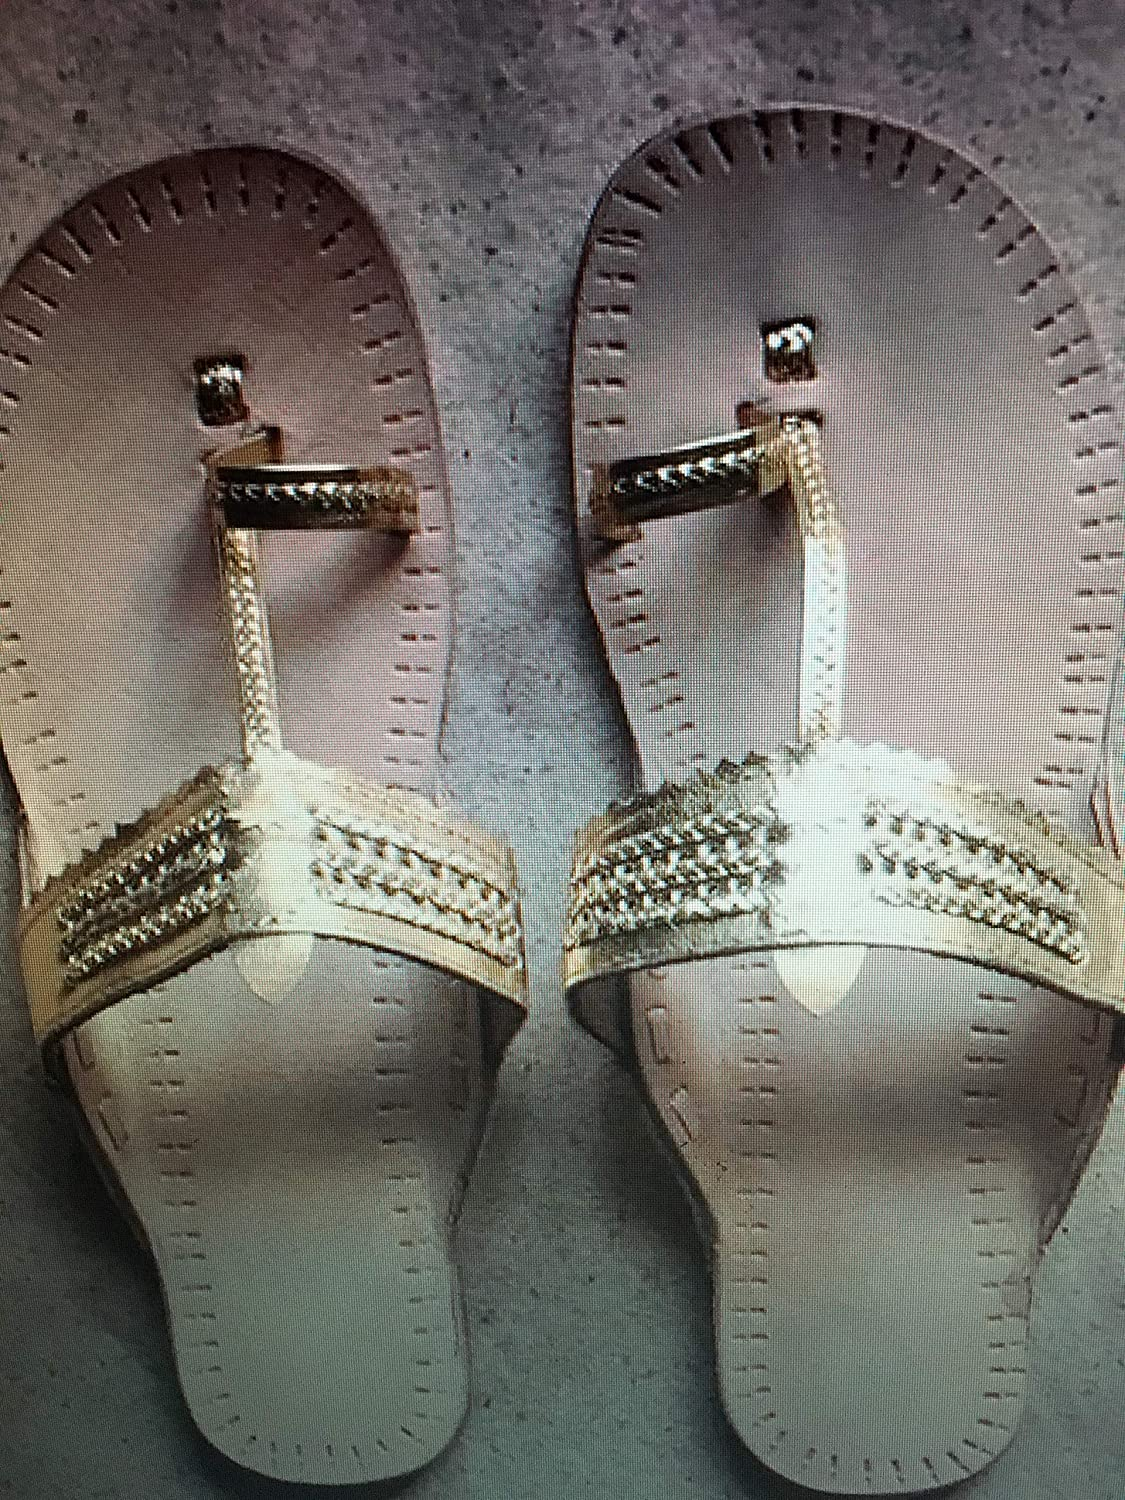 cb59175ec Silver & Gold Wedding Decorated Flip Flop, Sandals Flat Thong Slippers  Beach sandals, Wedding Sandals, Comfortable Wedding Shoe Flat sandals real  Leather